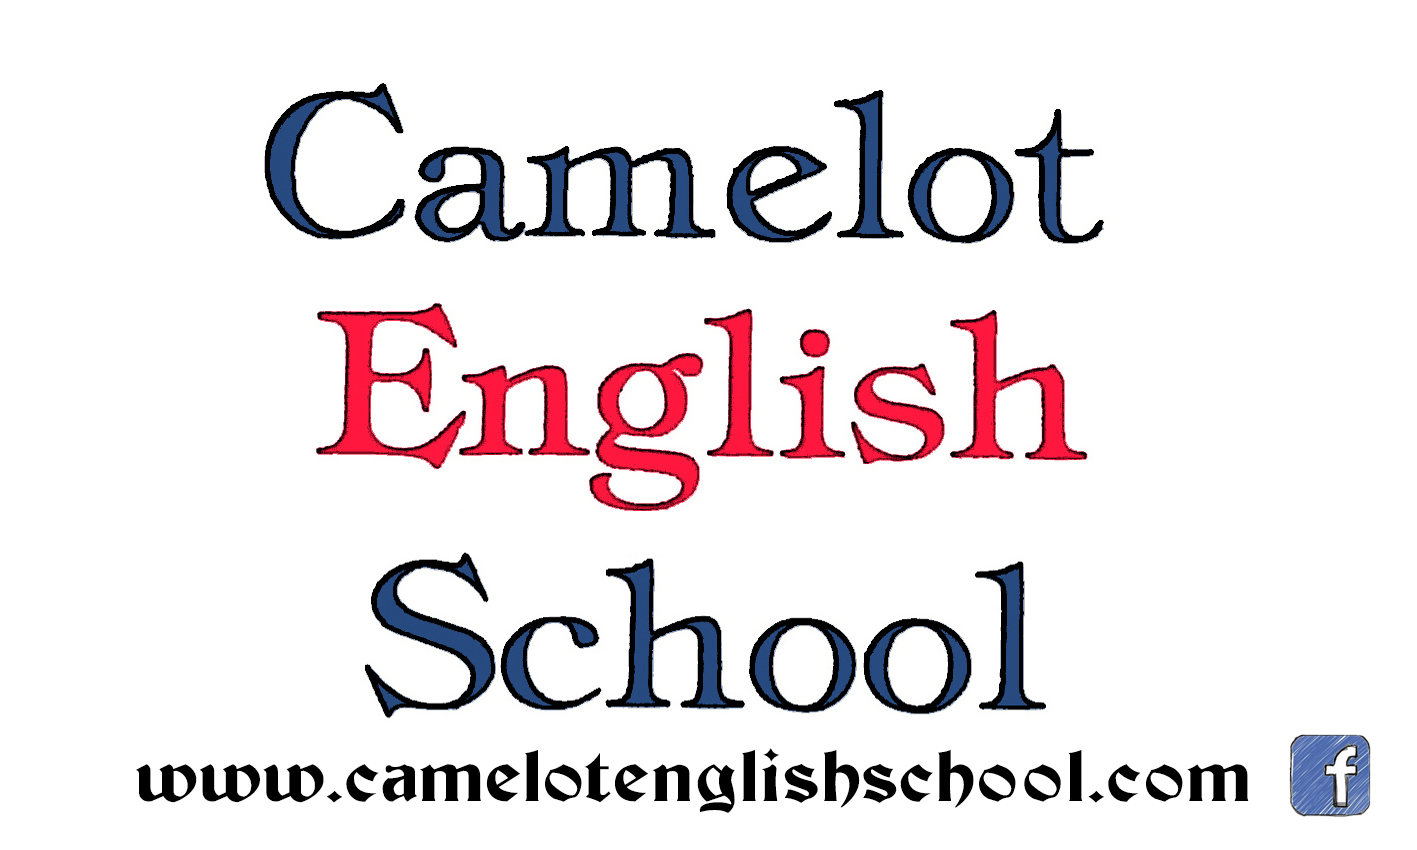 Camelot English School